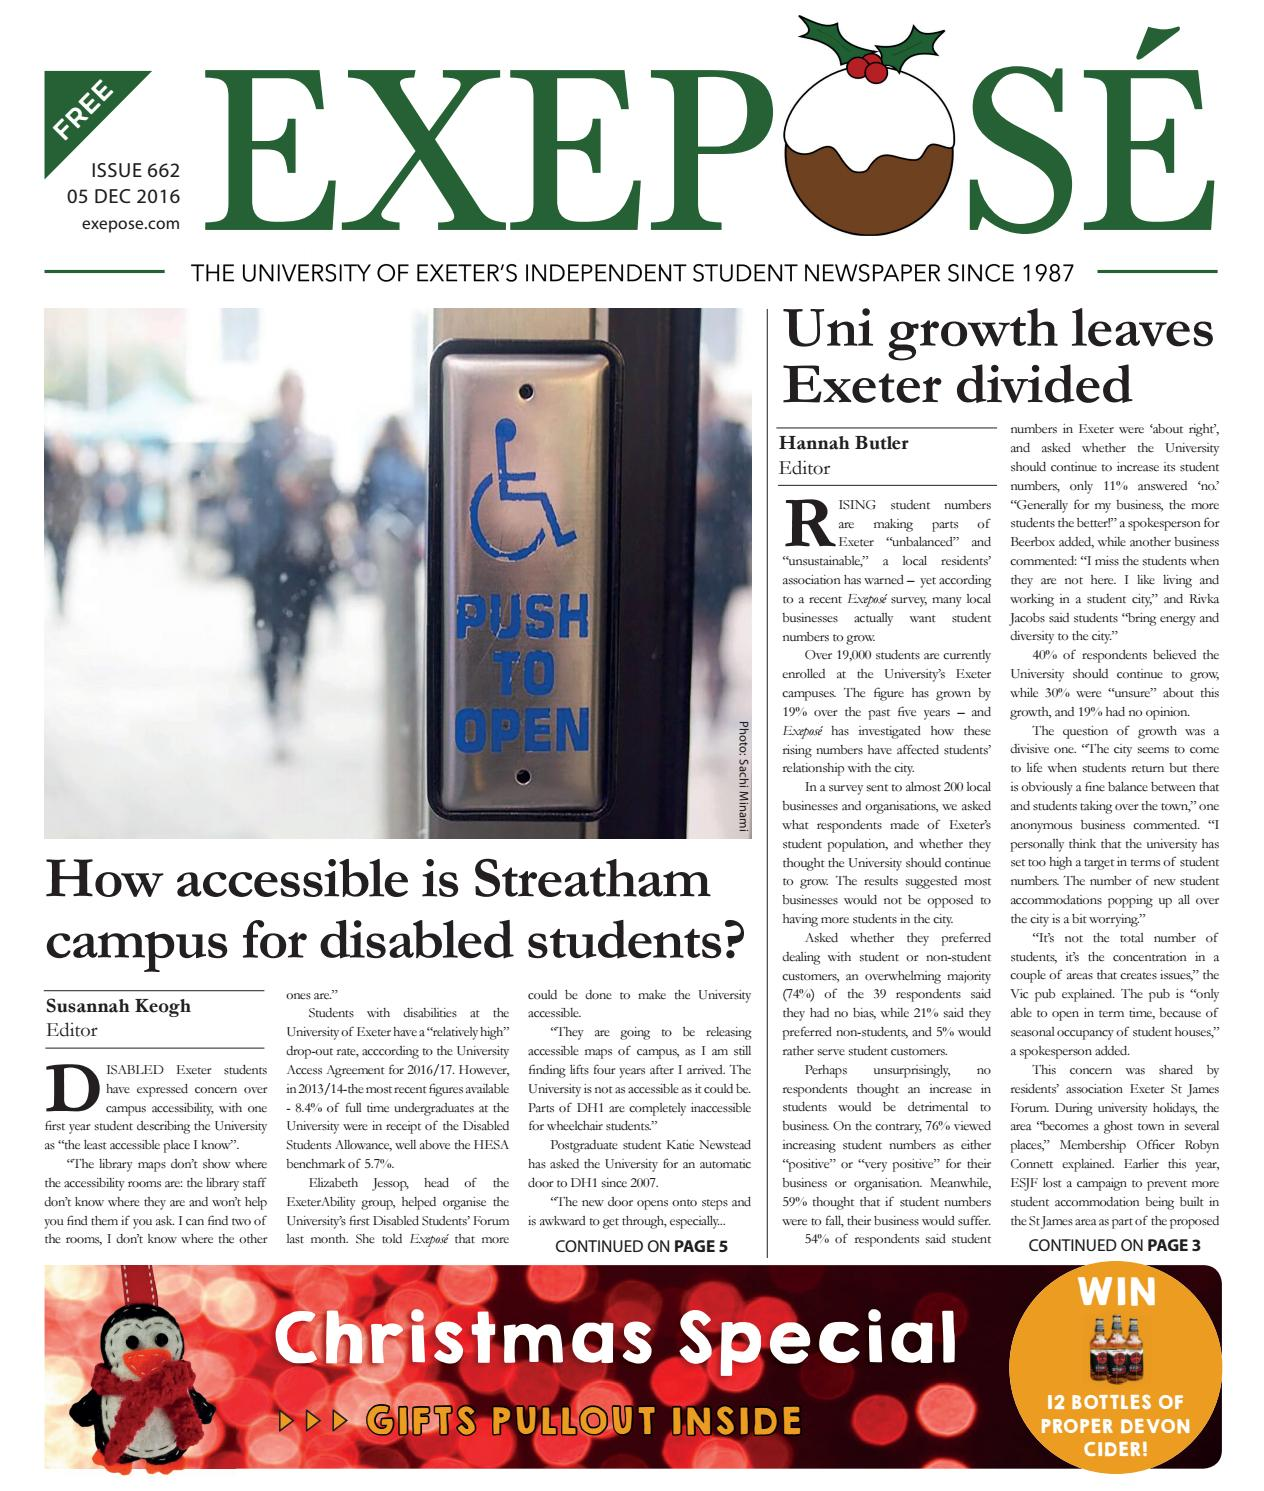 Exeposé Issue 662, 5 December 2016 by Exeposé - issuu